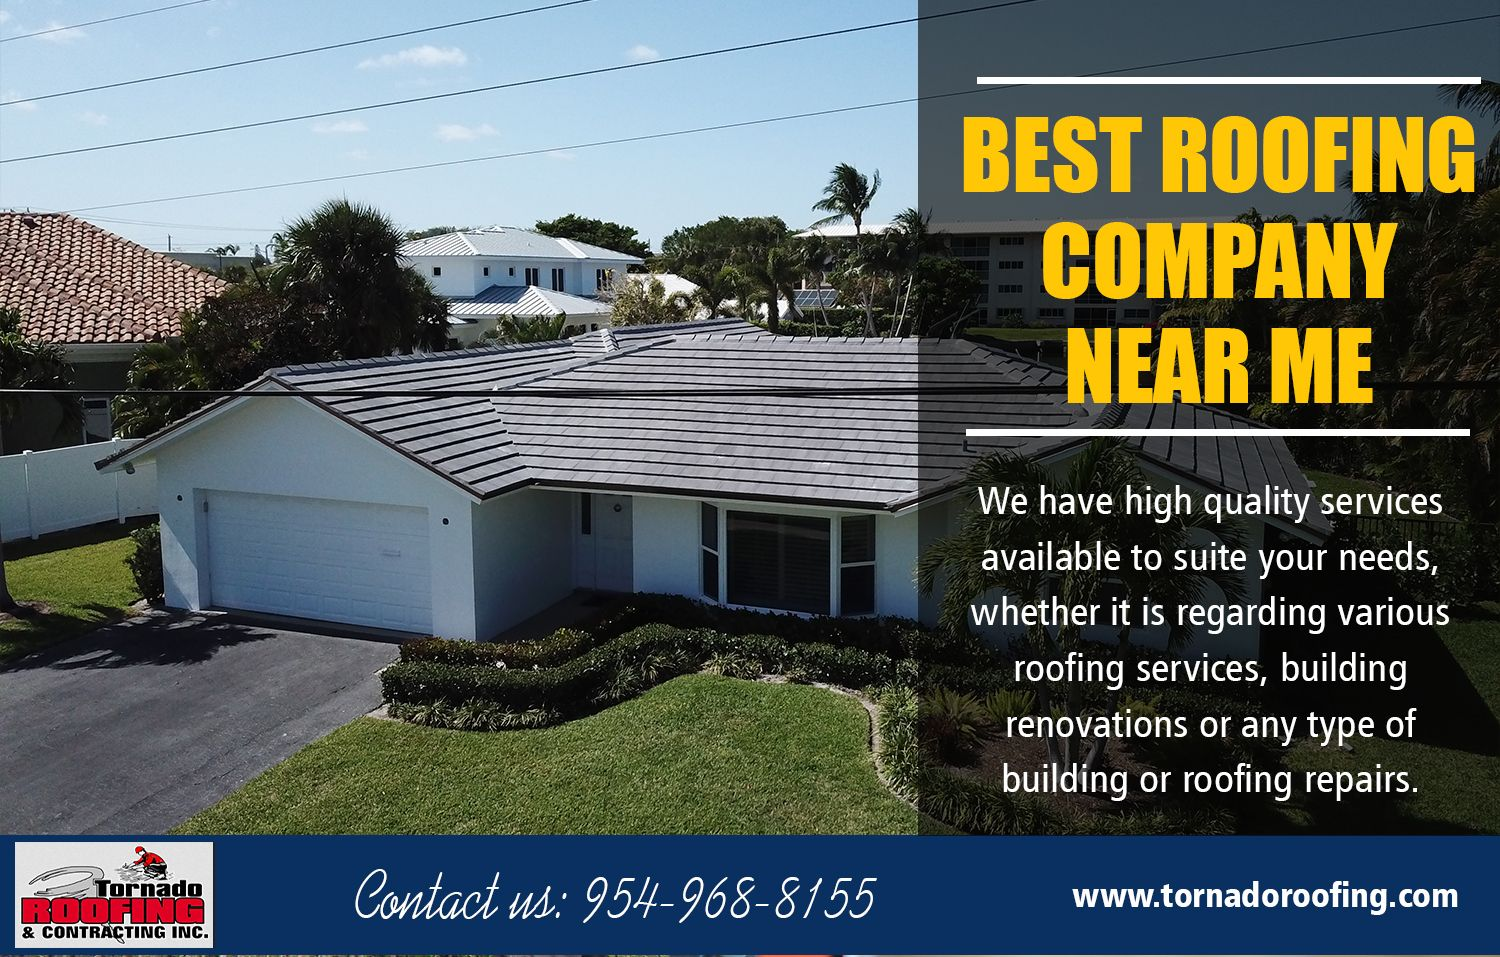 Best Roofing Company Near Me Best Roofing Company Cool Roof Flat Roof Systems